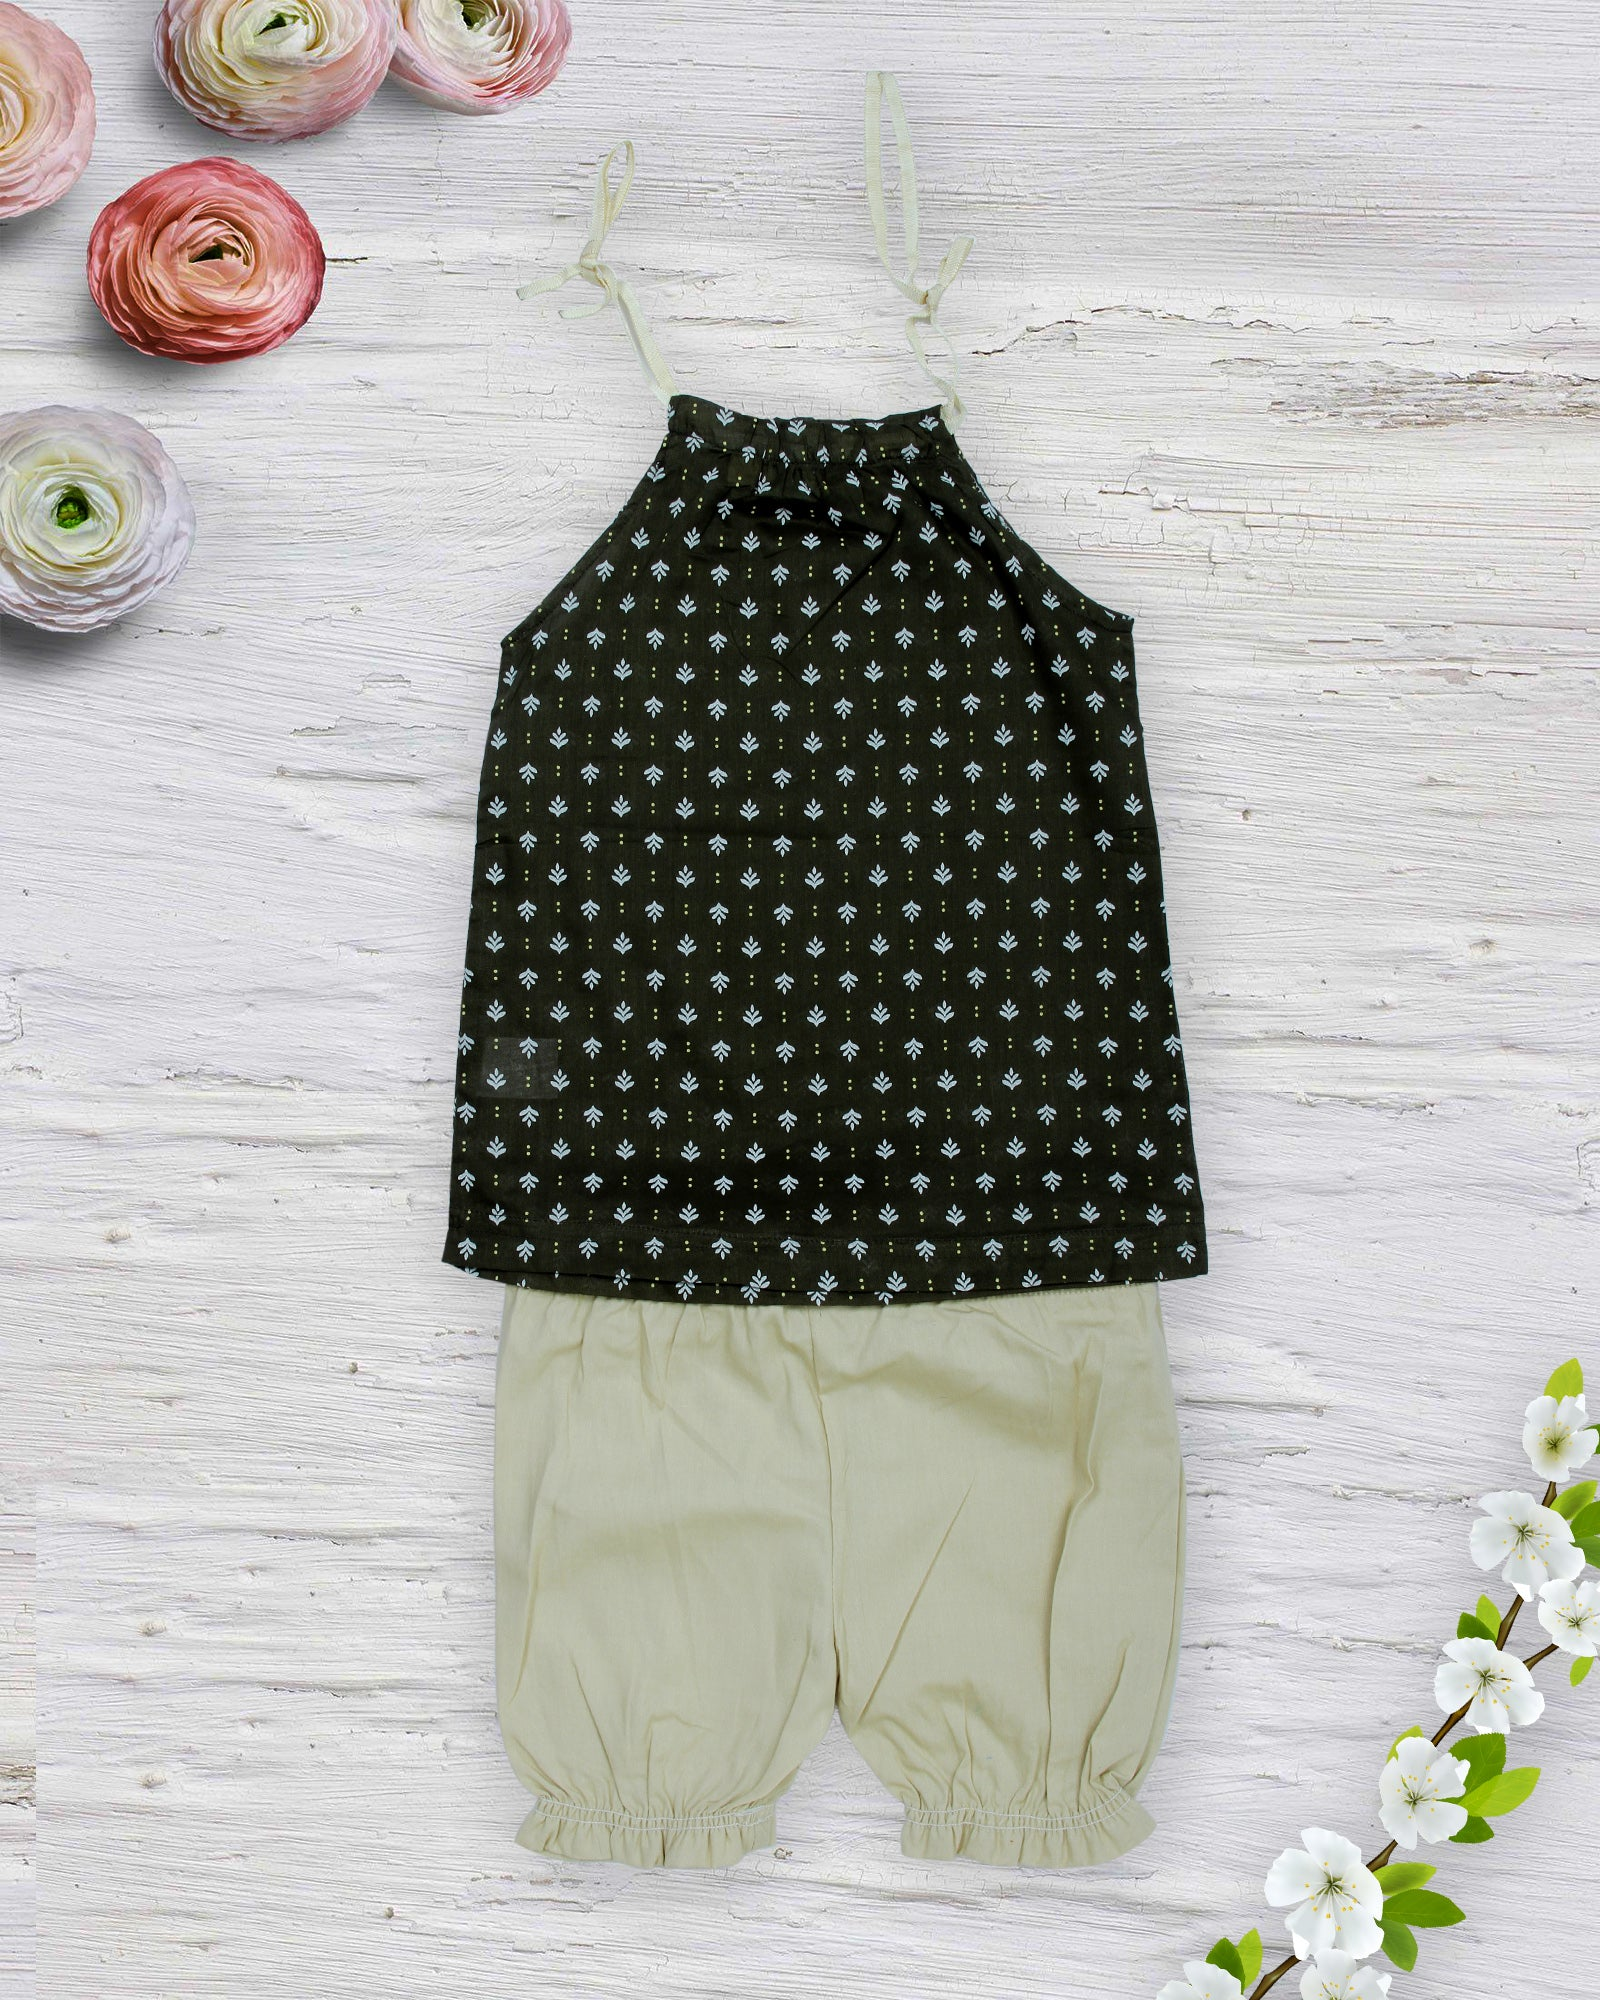 Green Leaf Printed Top With Beige Shorts ...